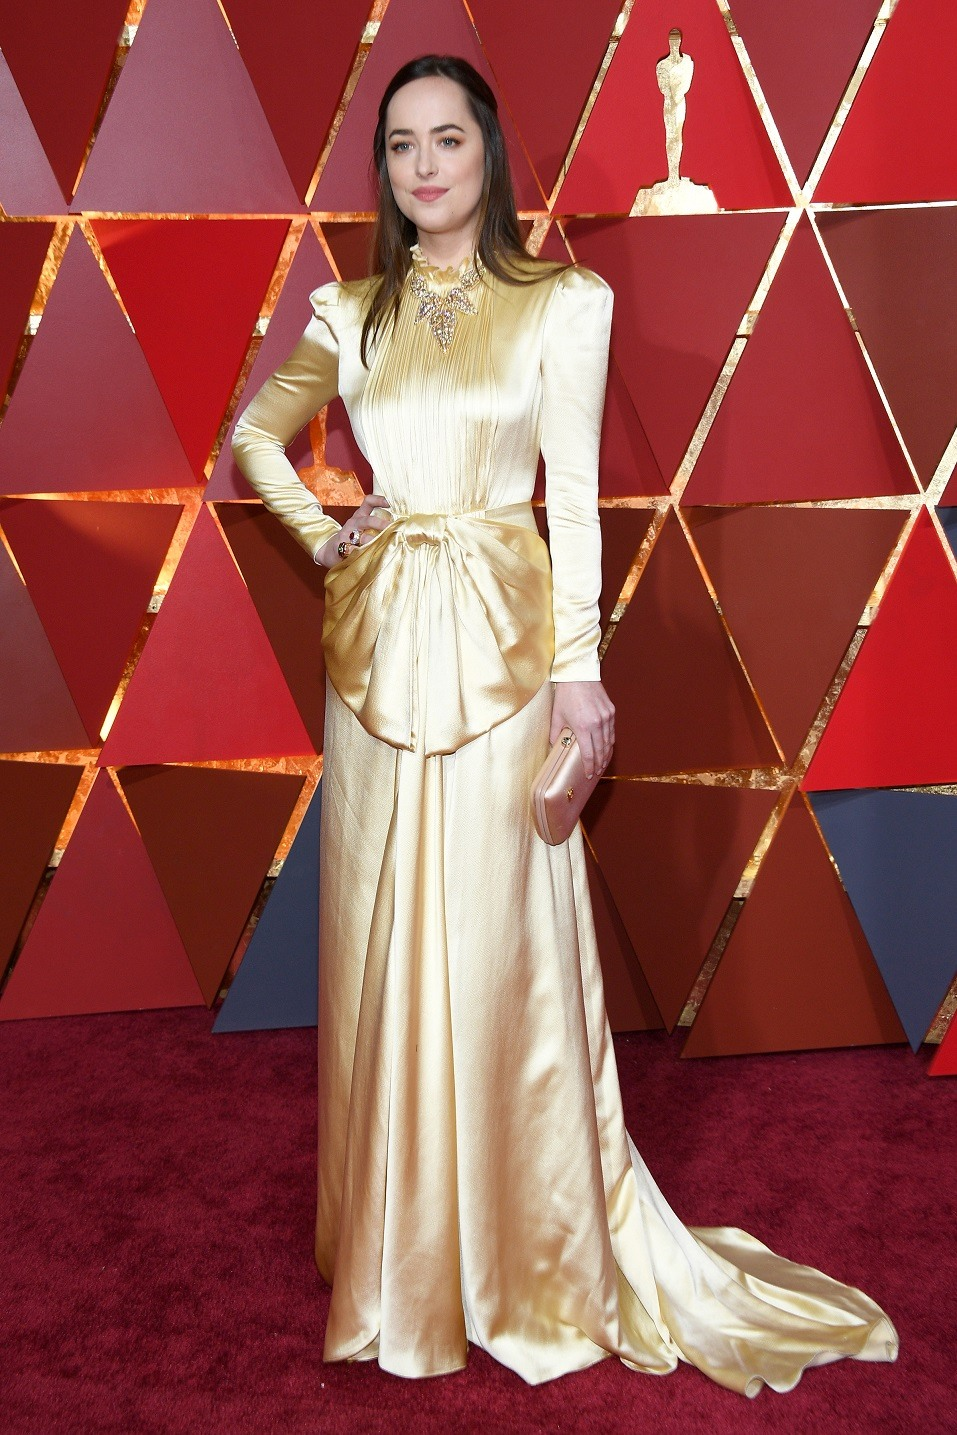 Actor Dakota Johnson attends the 89th Annual Academy Awards